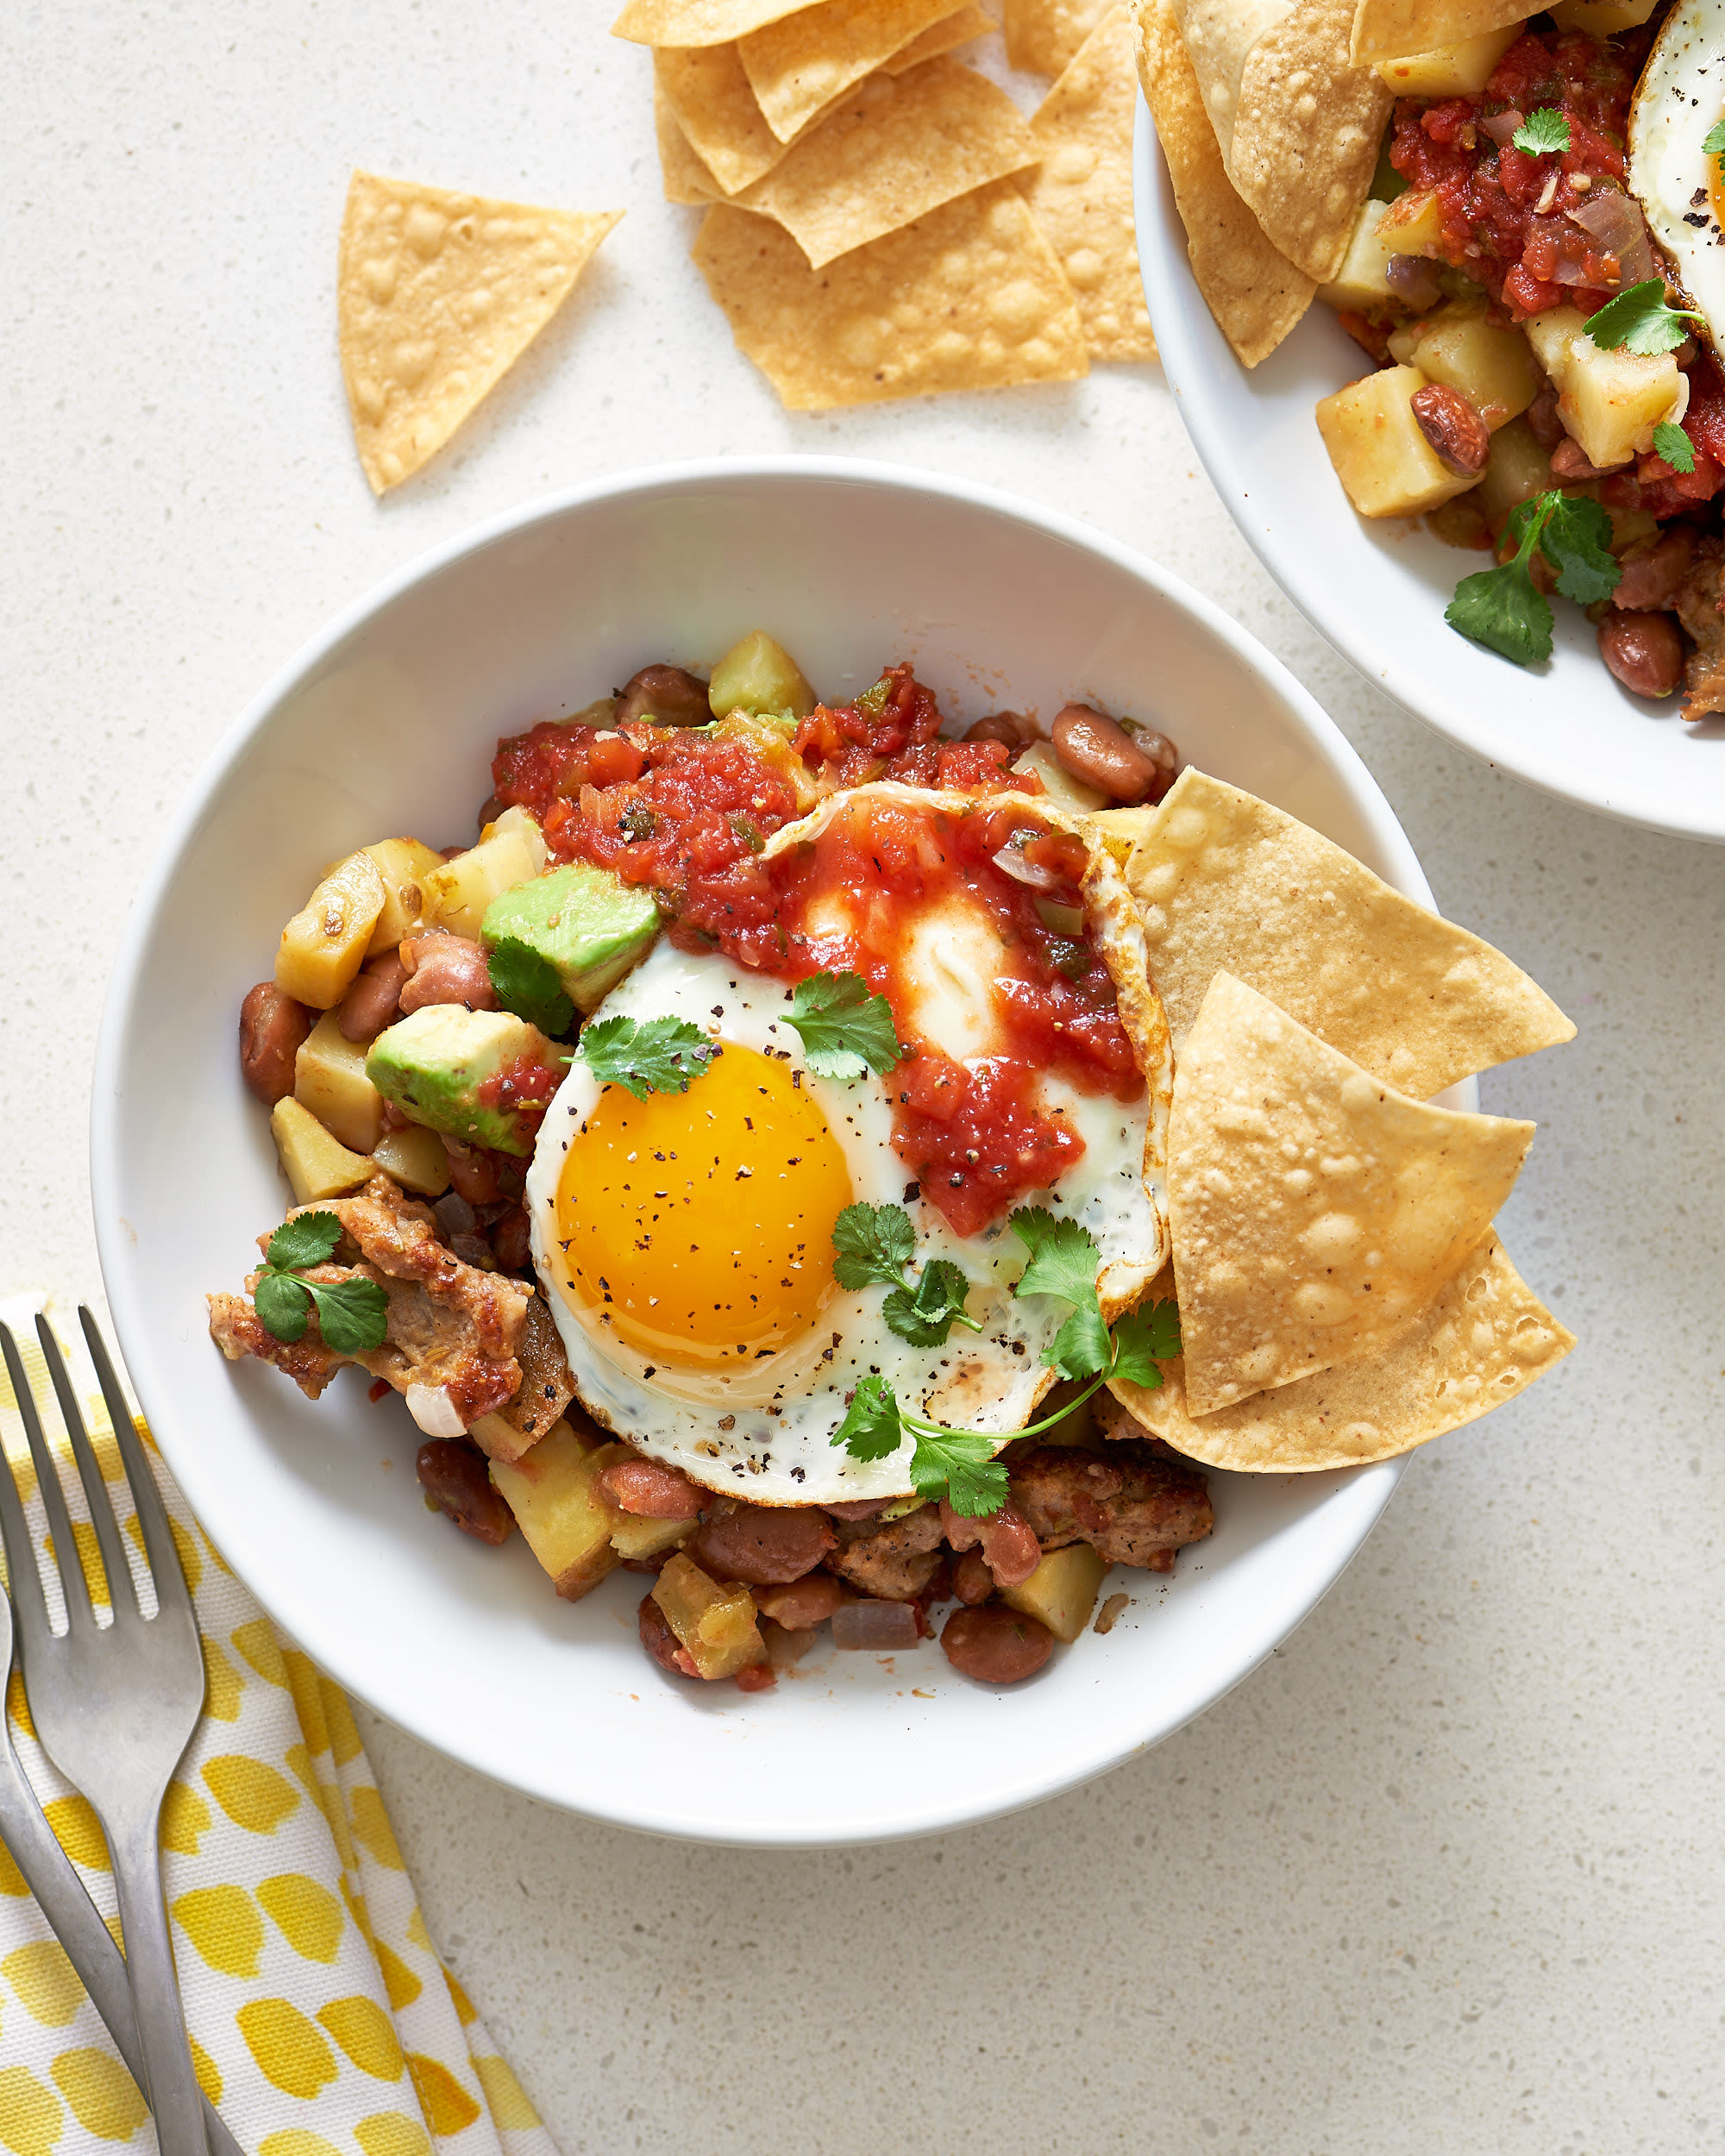 How To Make Slow Cooker Breakfast Burrito Bowls: gallery image 1